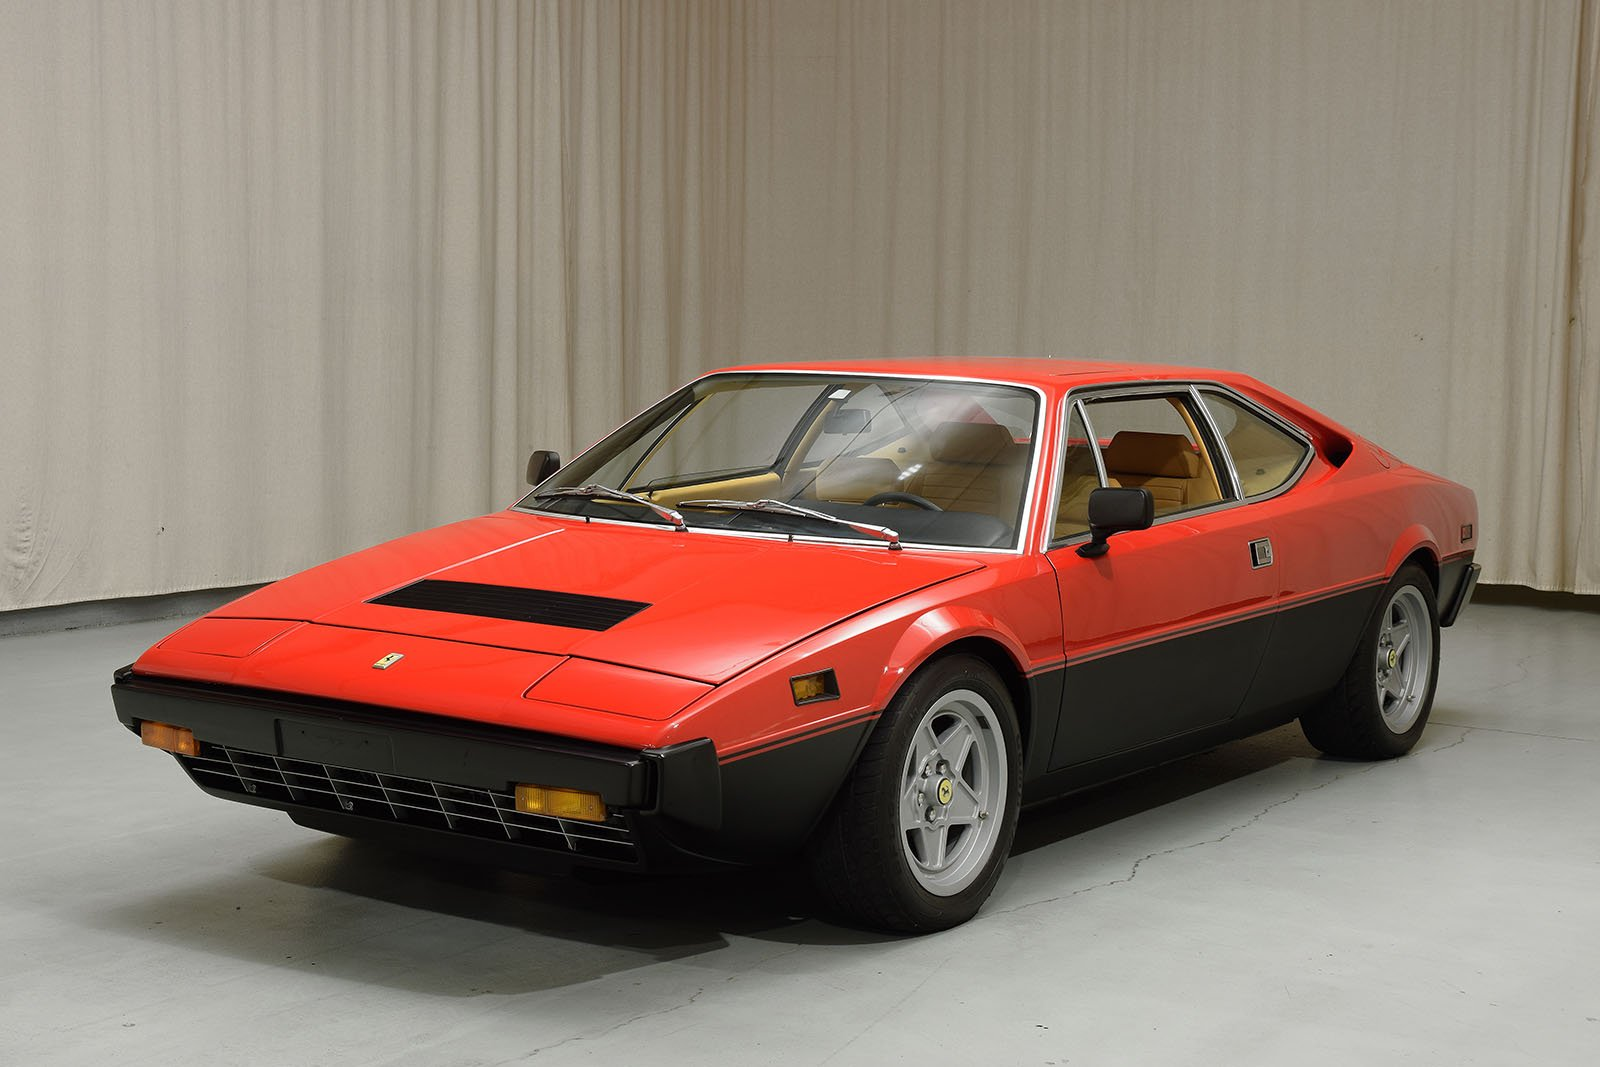 1979 ferrari 308 gt4 coupe hyman ltd classic cars. Black Bedroom Furniture Sets. Home Design Ideas